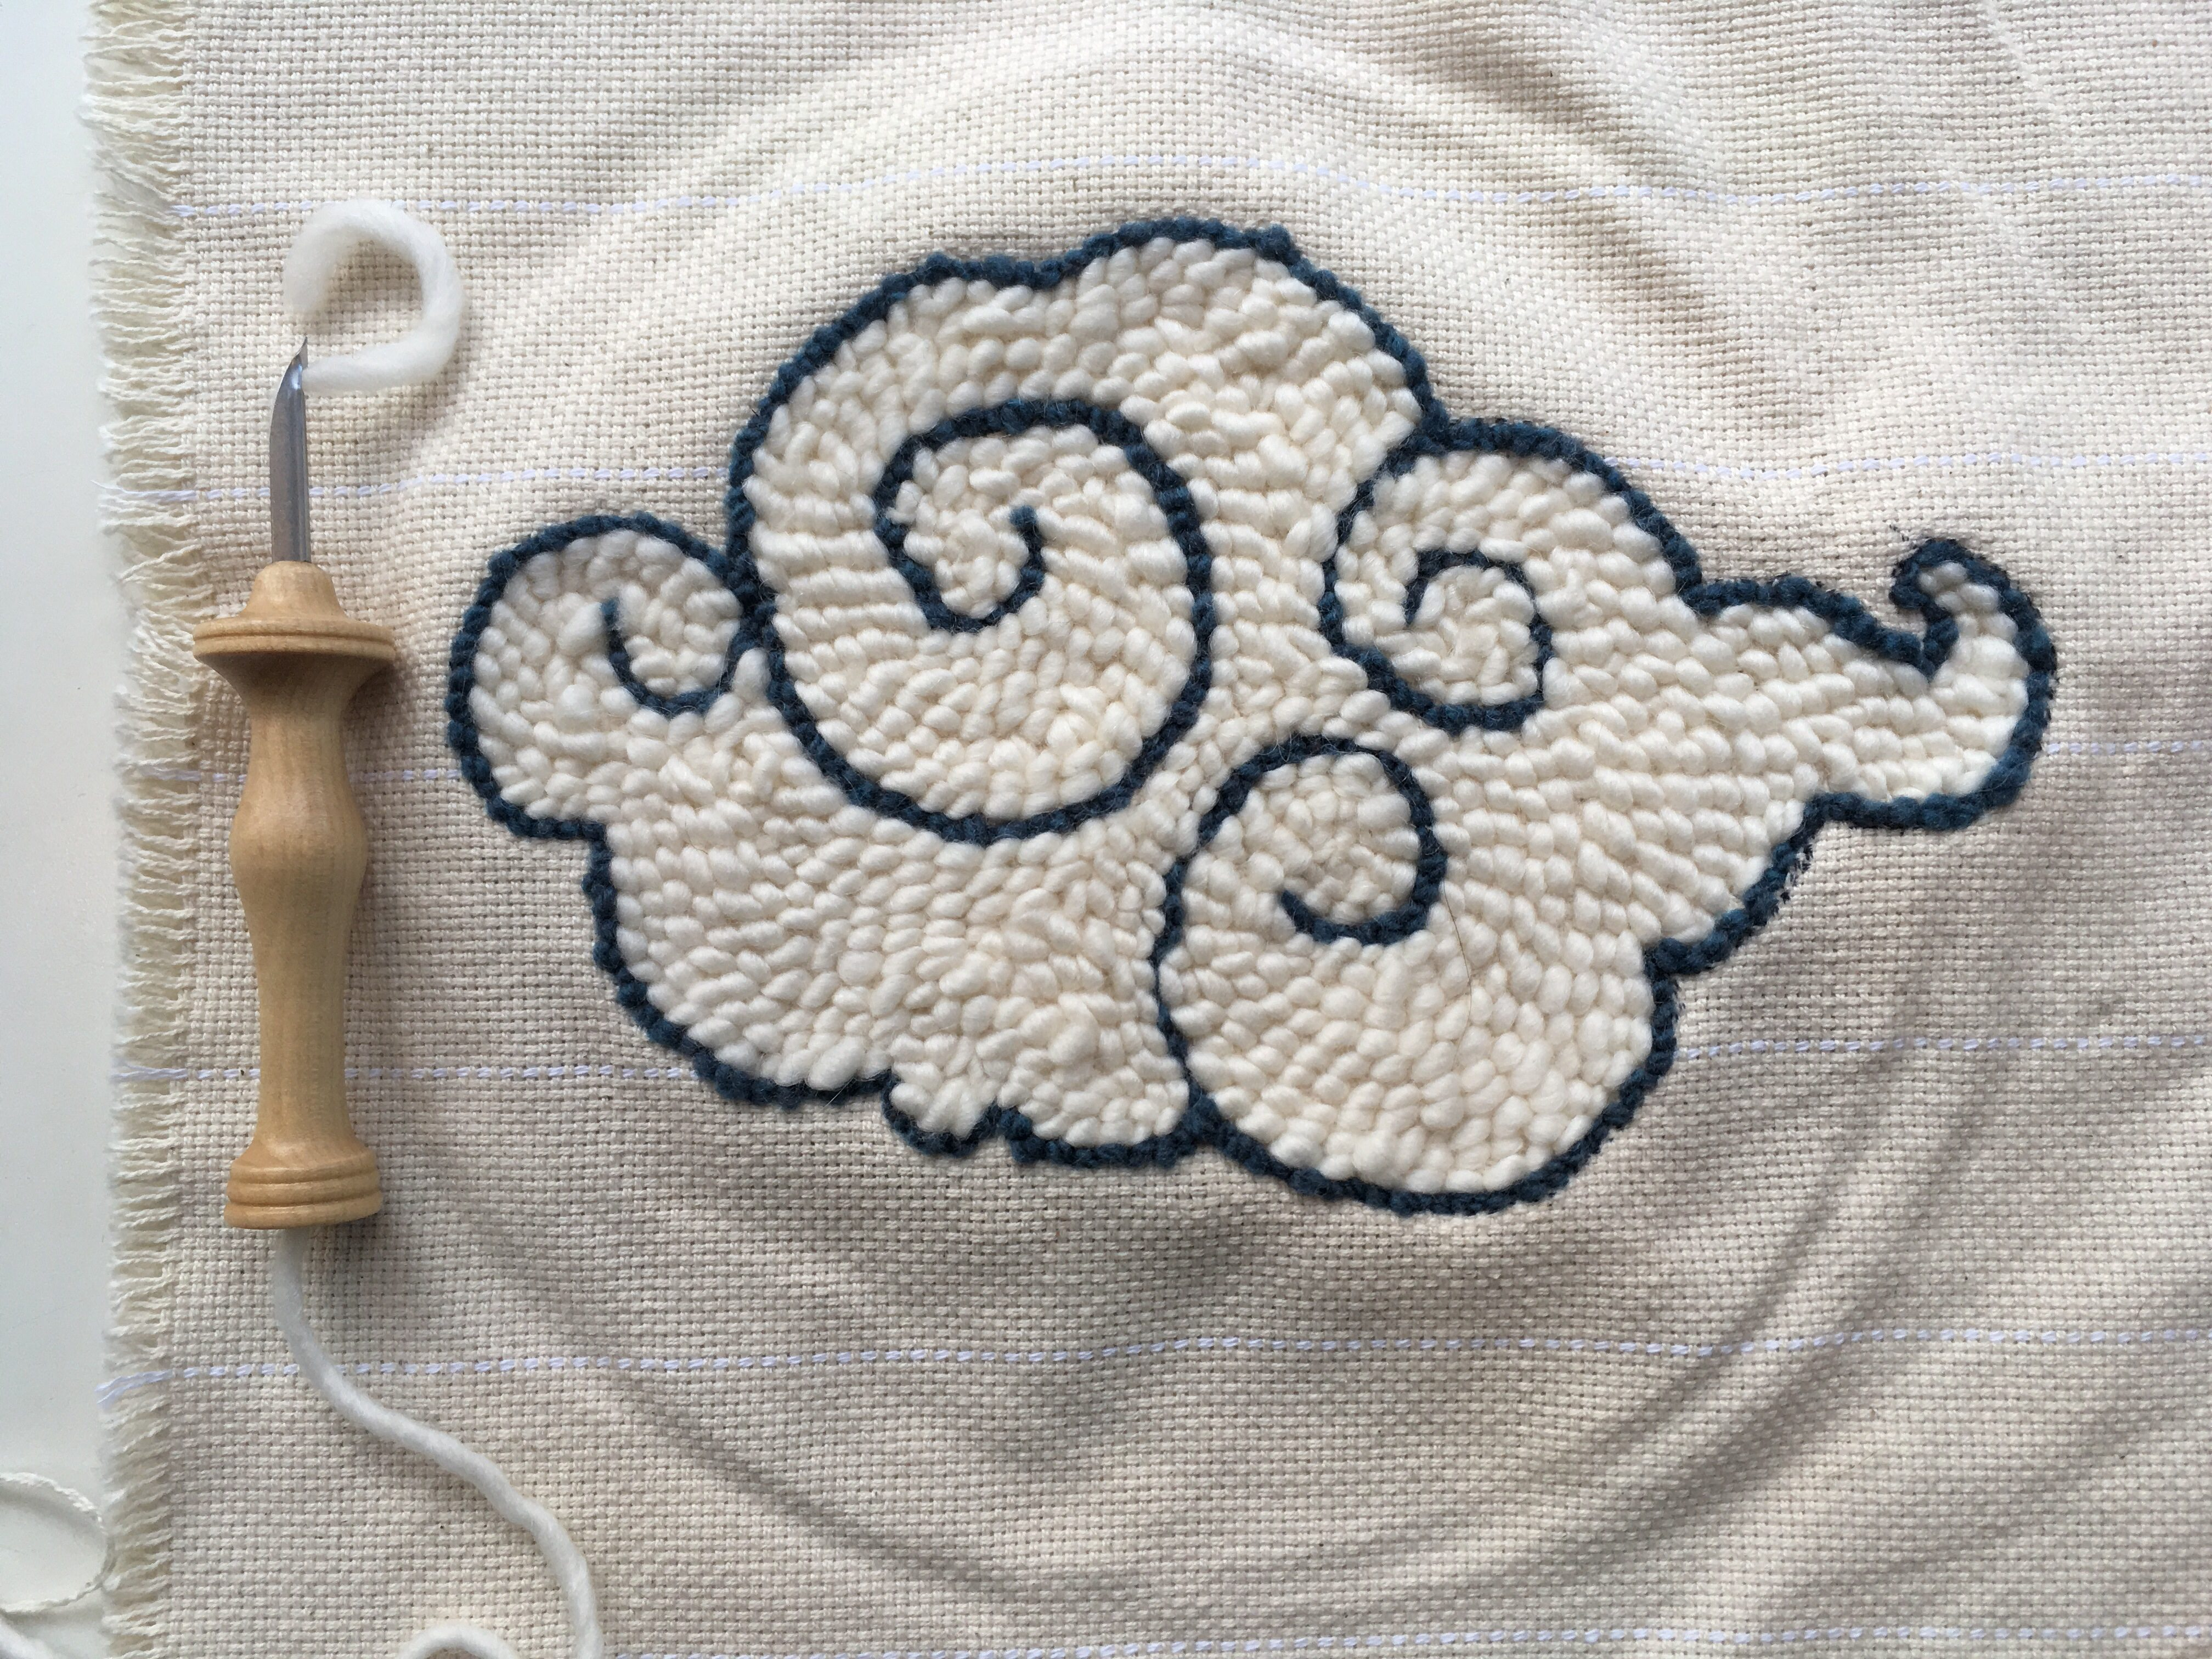 rug hooking and punch needle supplies | the knit cafe